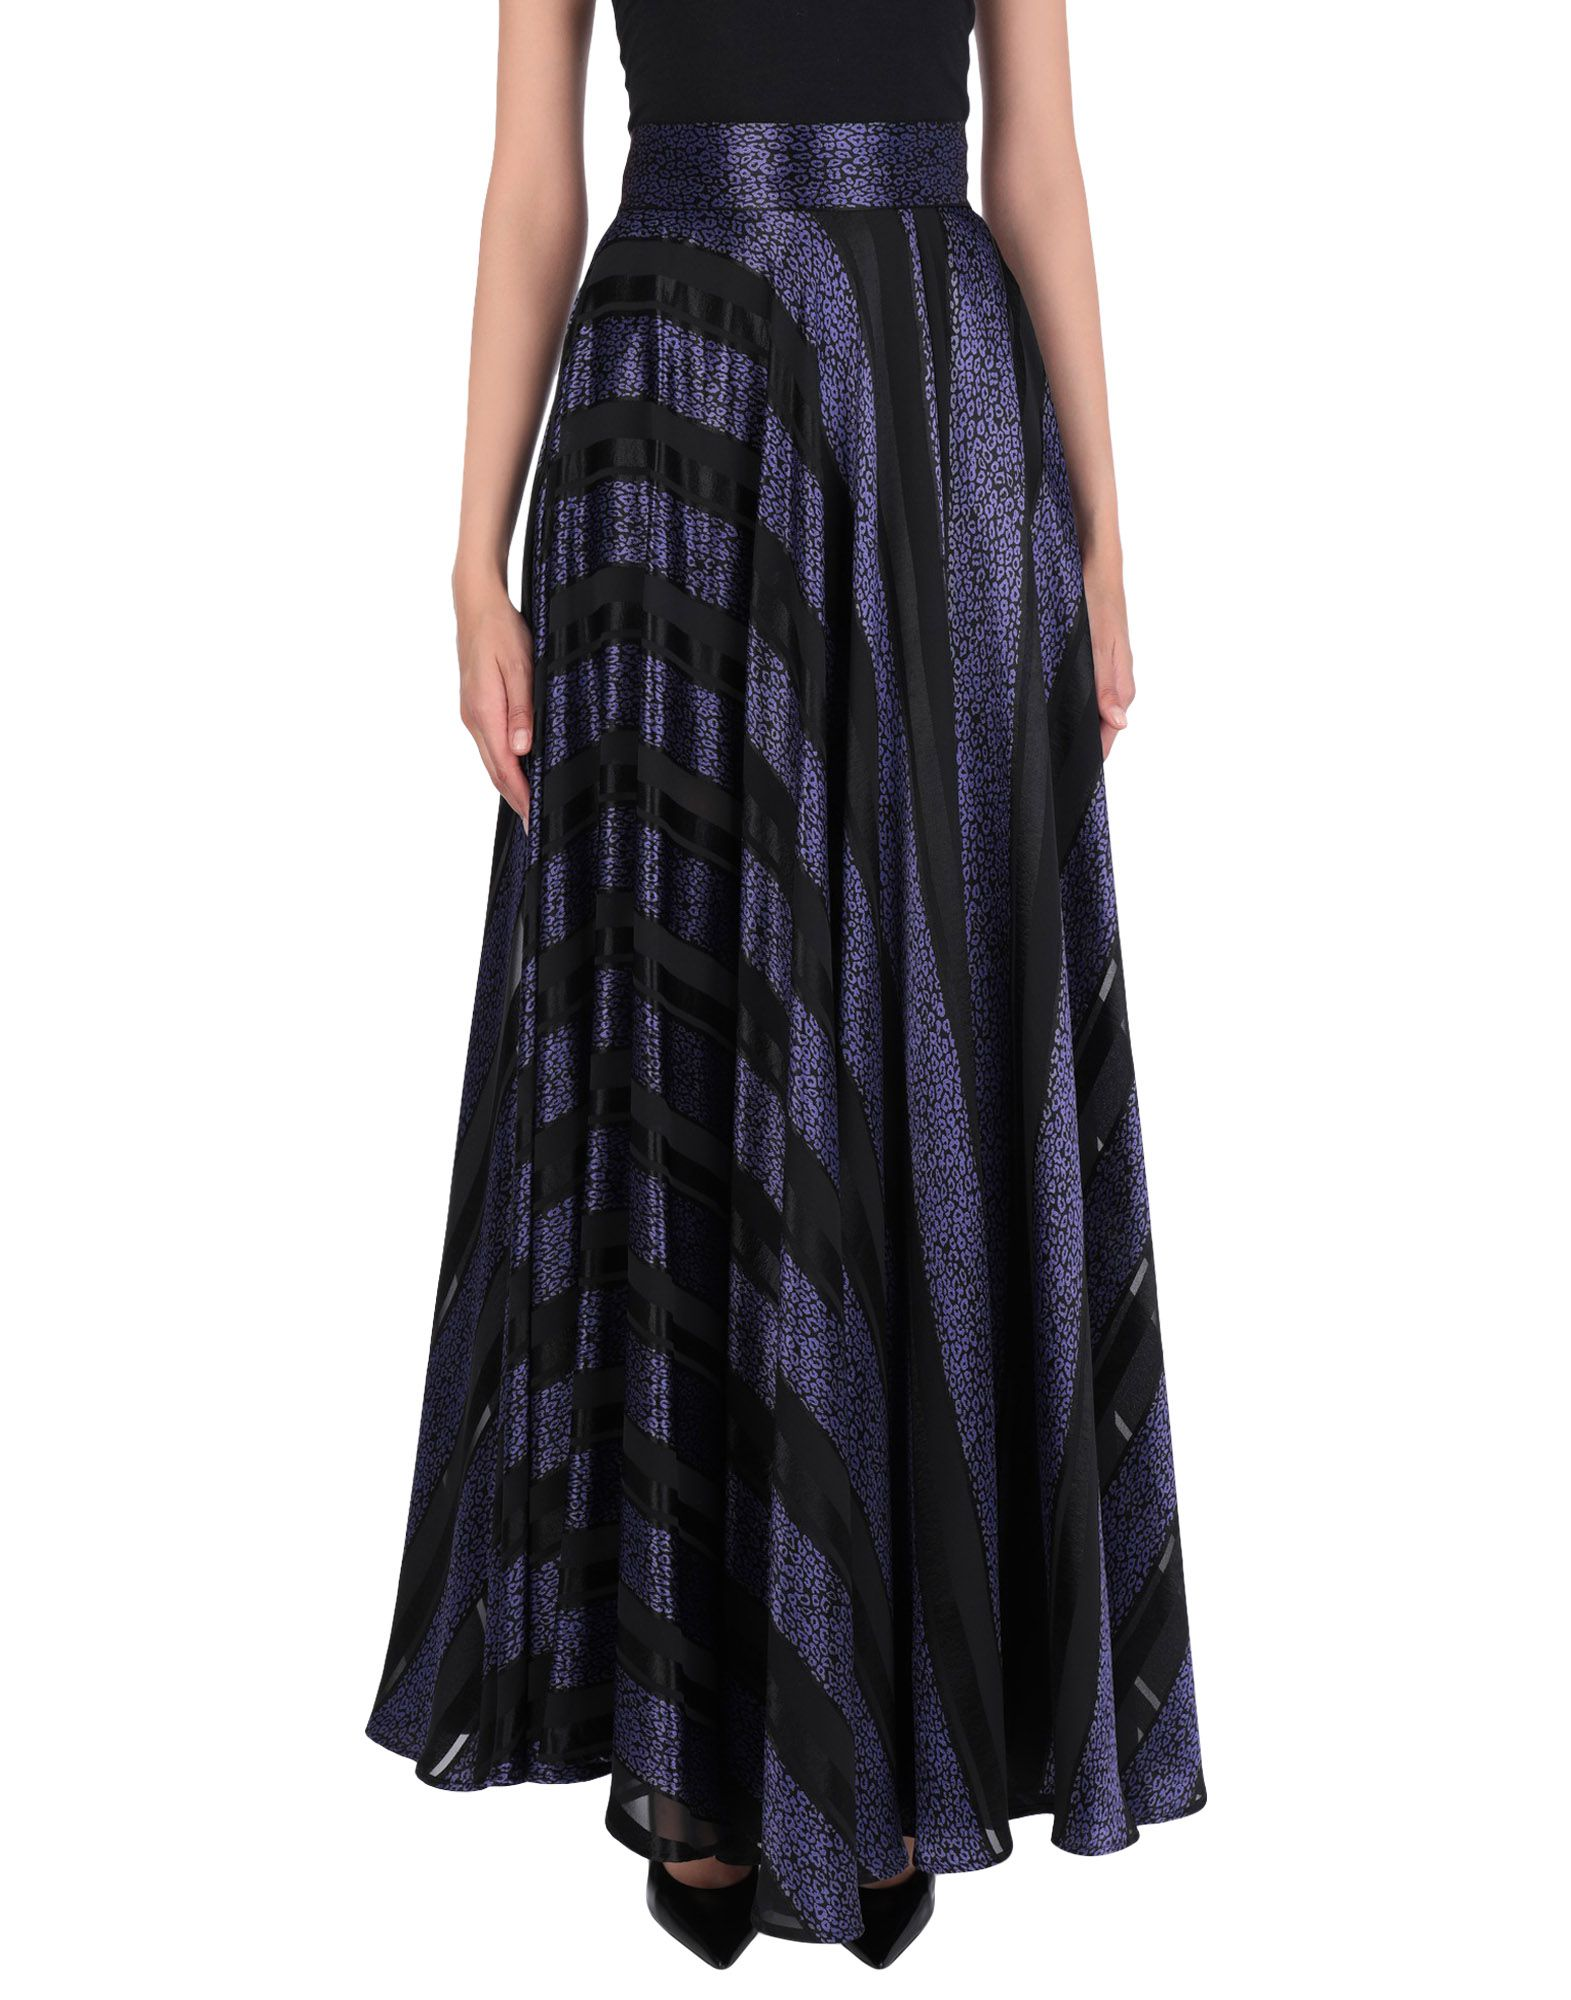 Gonna Lunga W Les donna By Babylon donna - 35414691WX